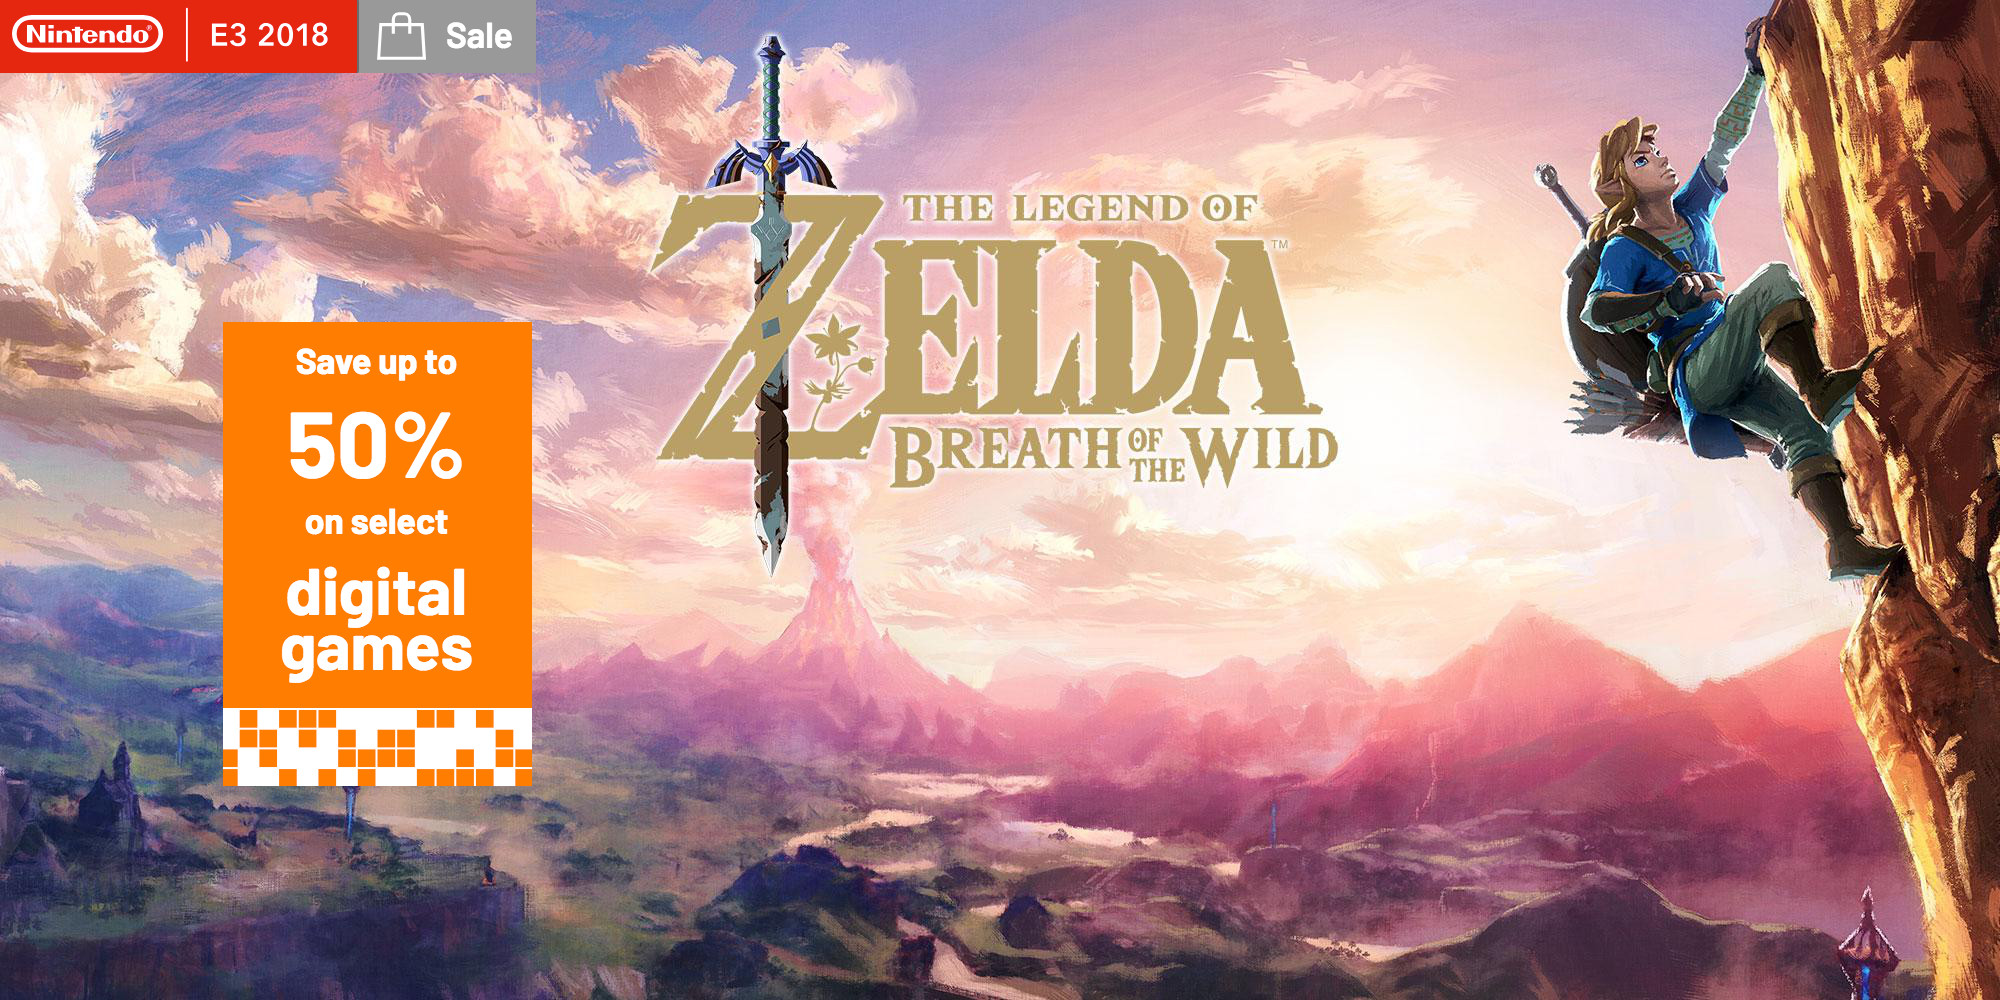 Nintendo E3 2018 Eshop Sale From 6 Zelda Breath Of The Wild 3ds Metroid Samus Returns Special Edition Reg Us Rocket League Much More 9to5toys